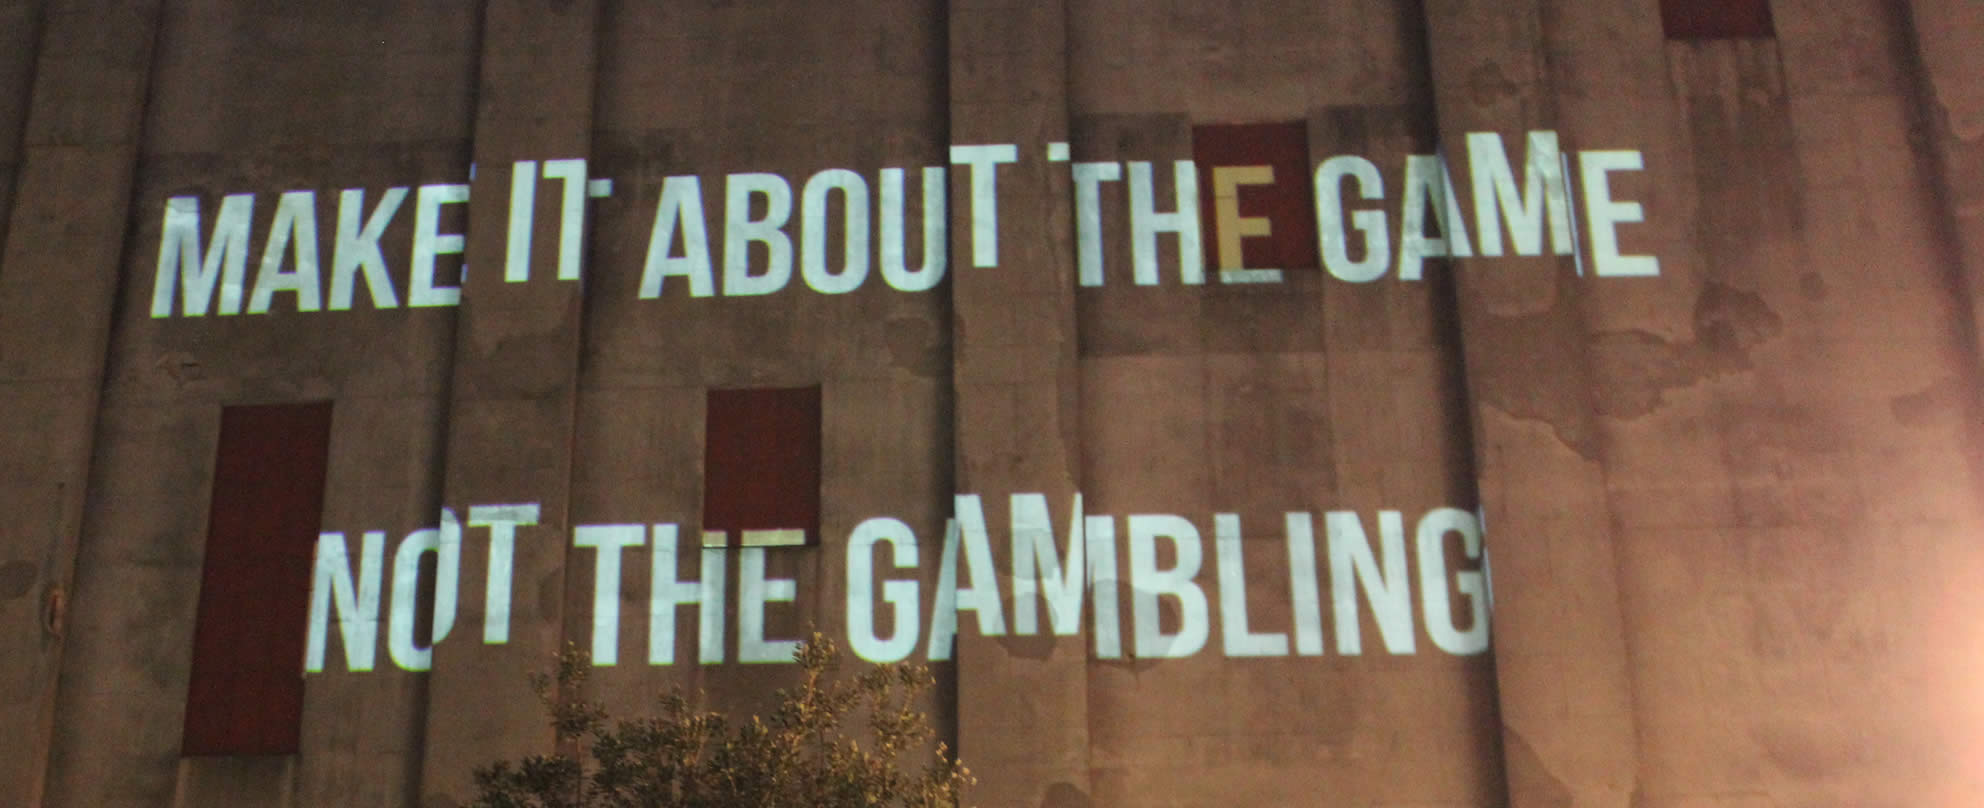 The campaign message projected onto a building in central Auckland